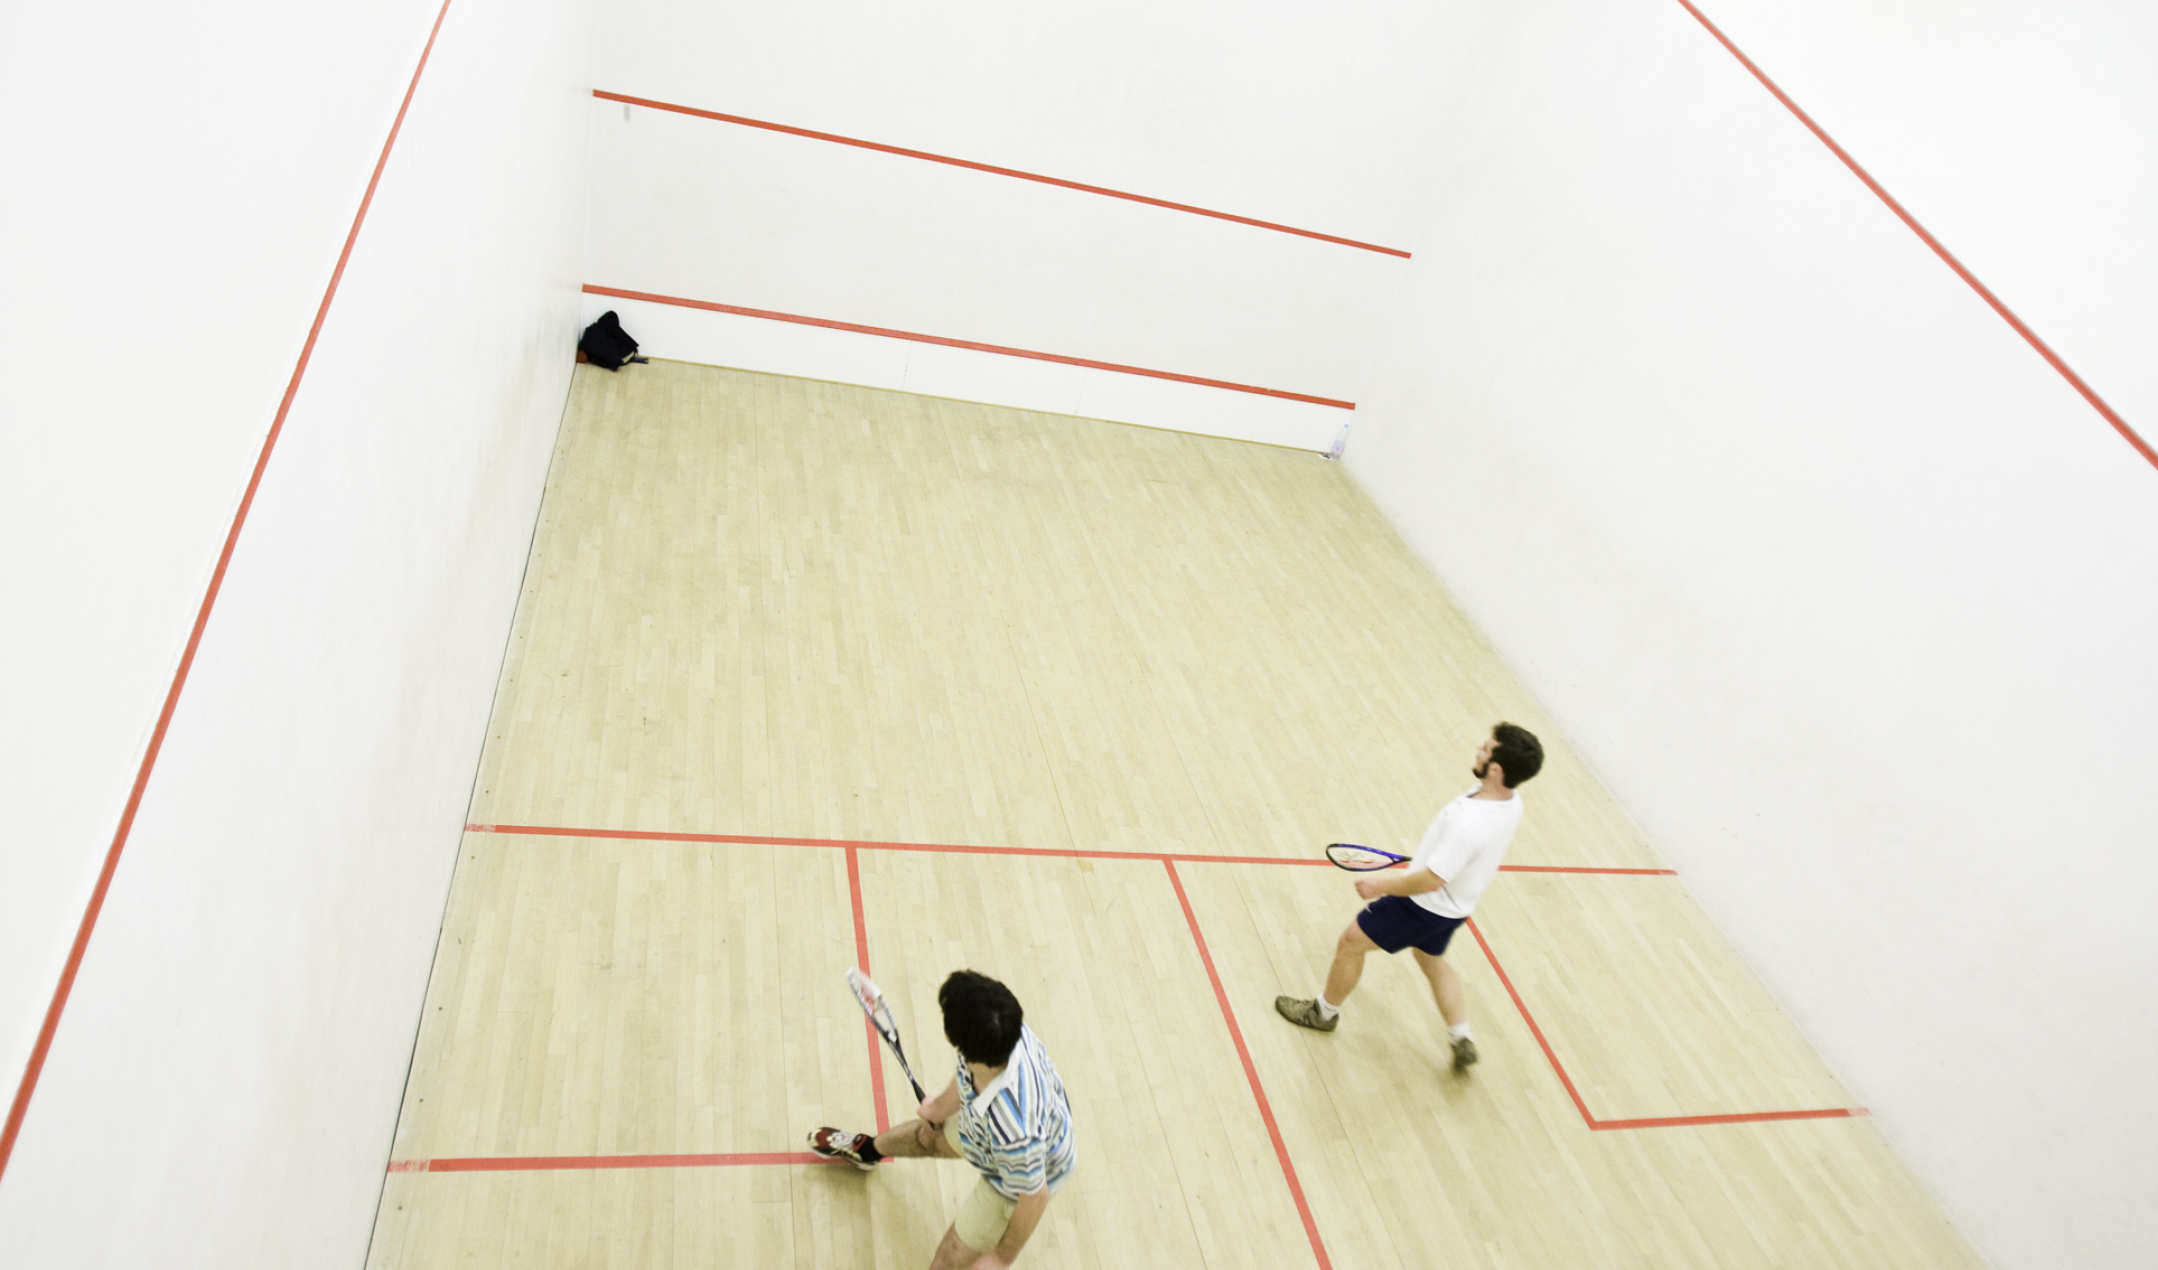 why do squash players touch the wall